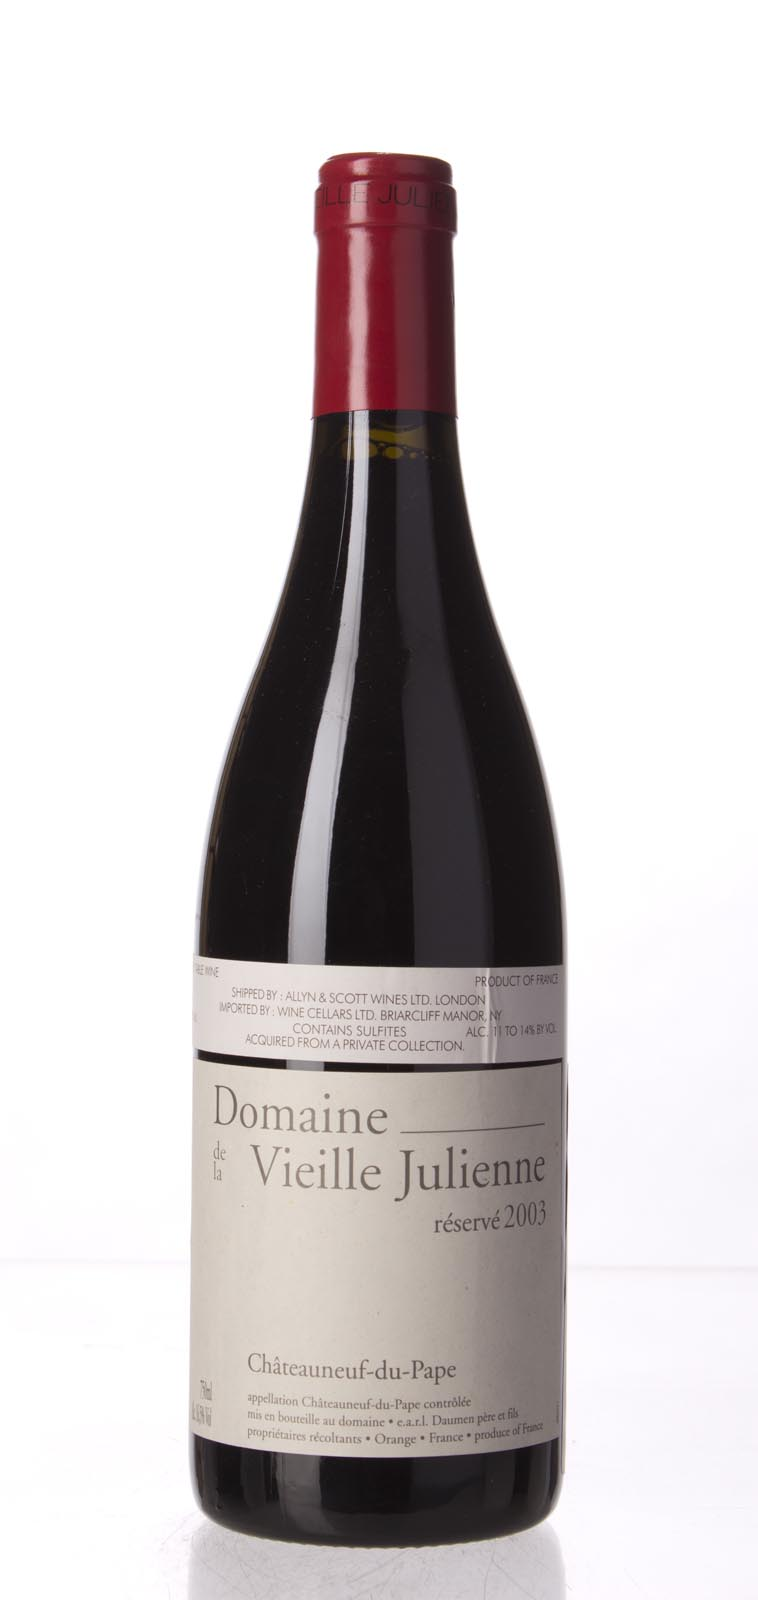 Domaine de la Vieille Julienne Chateauneuf du Pape Cuvee Reservee 2003,  (WA100) from The BPW - Merchants of rare and fine wines.